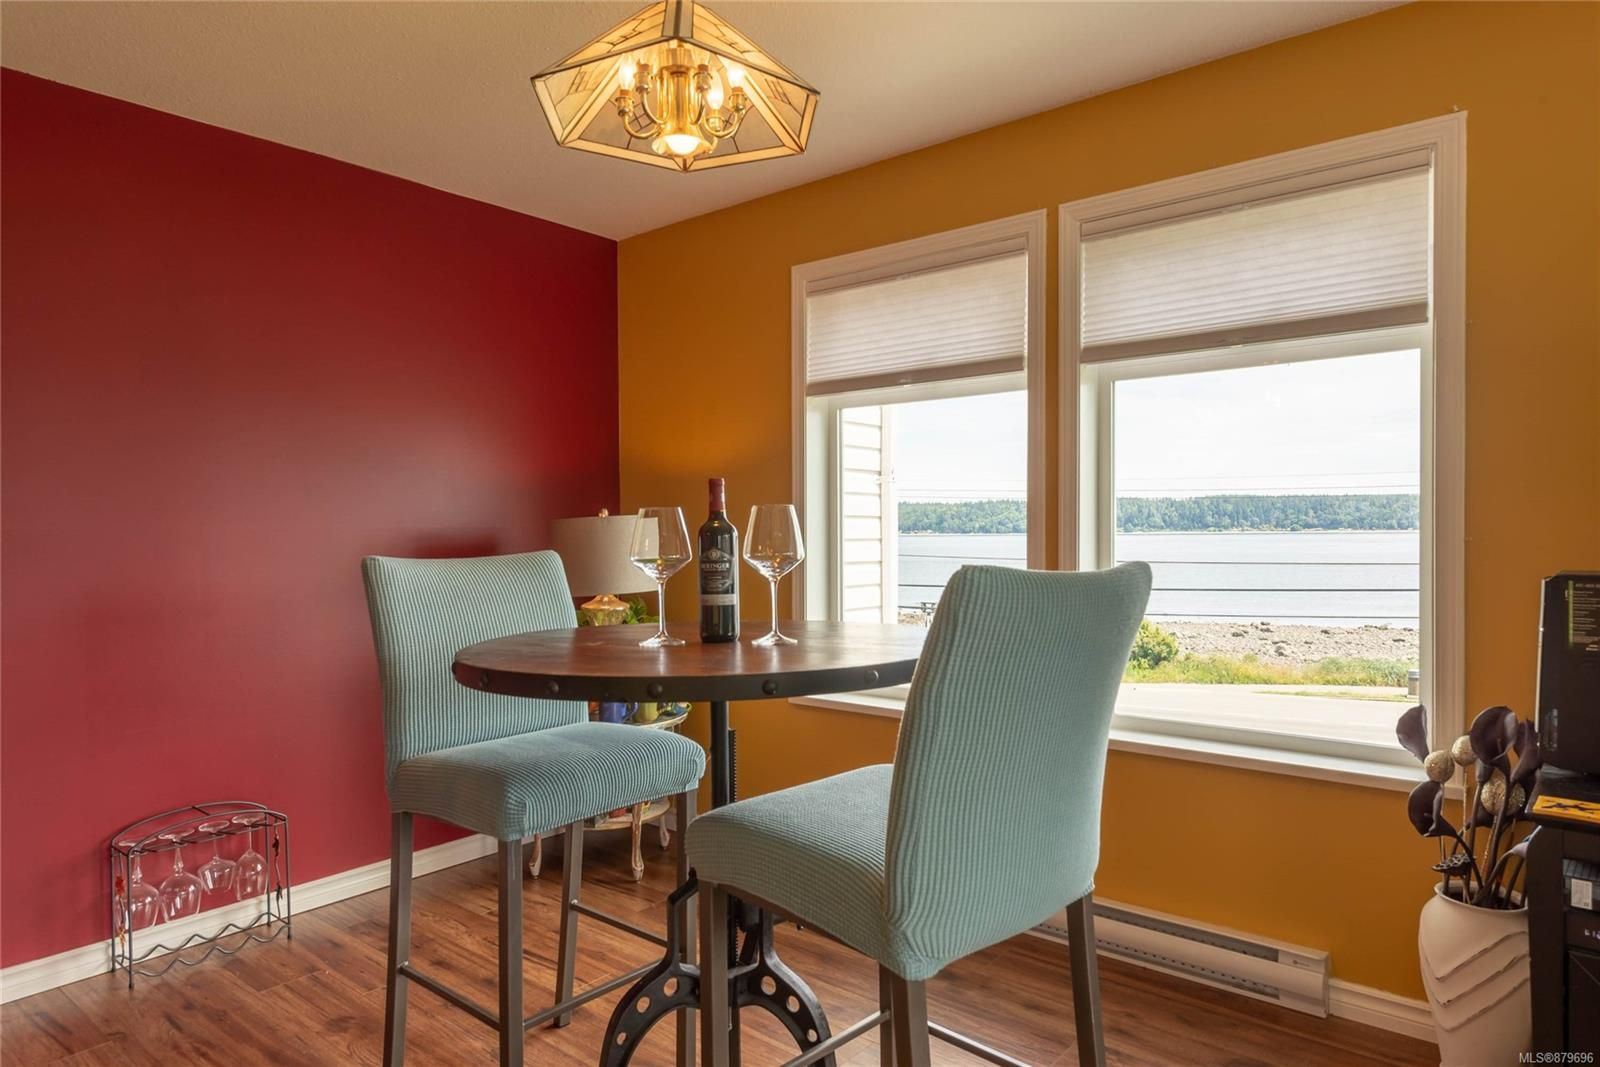 Photo 10: Photos: 219 390 S Island Hwy in : CR Campbell River West Condo for sale (Campbell River)  : MLS®# 879696